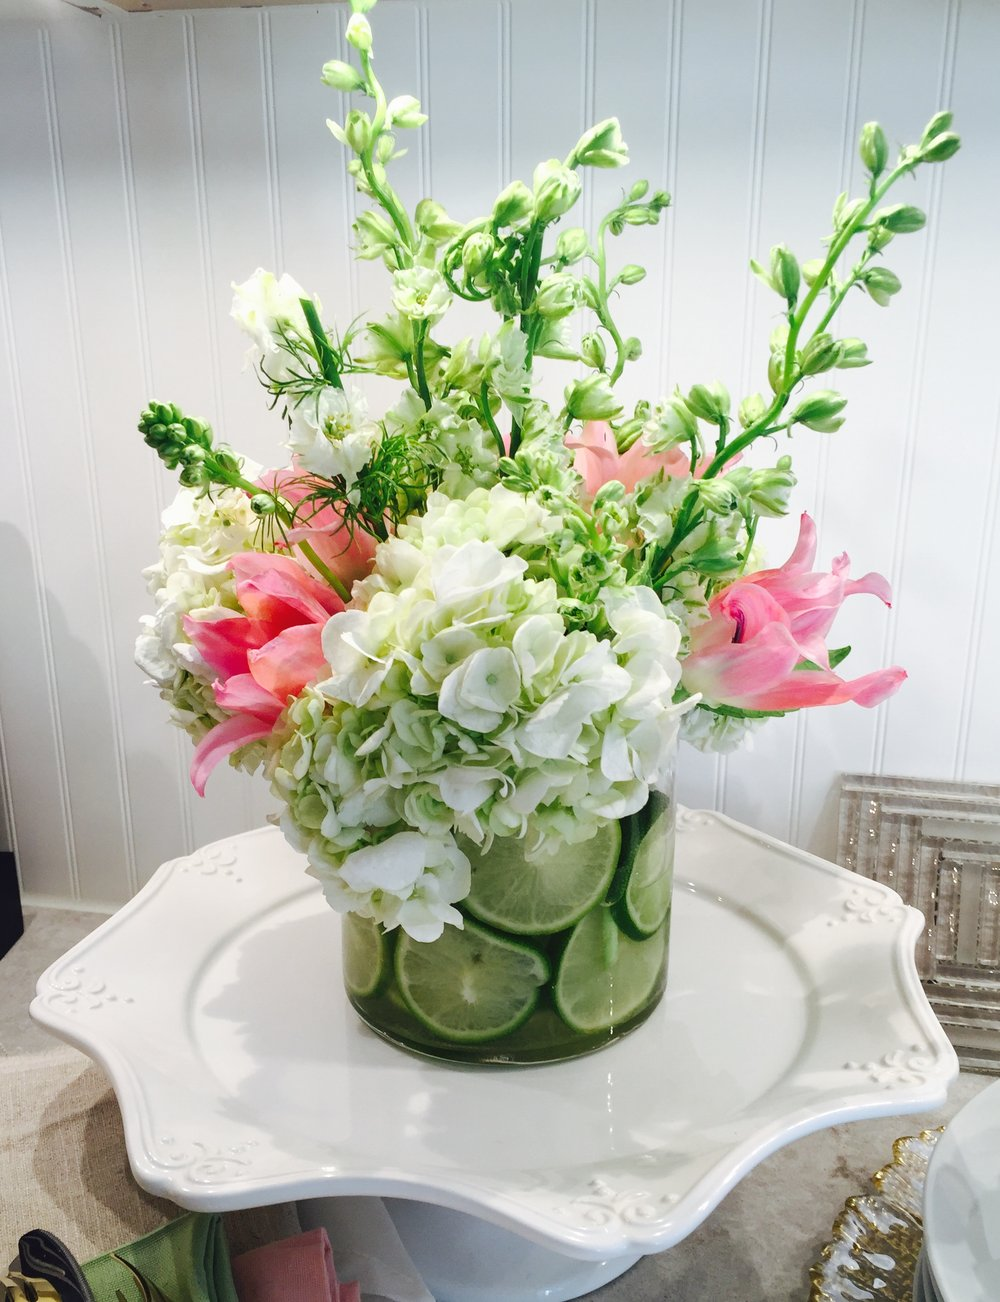 Spring Floral Centerpiece with fresh cut limes designed by Georgette Marise Interiors.